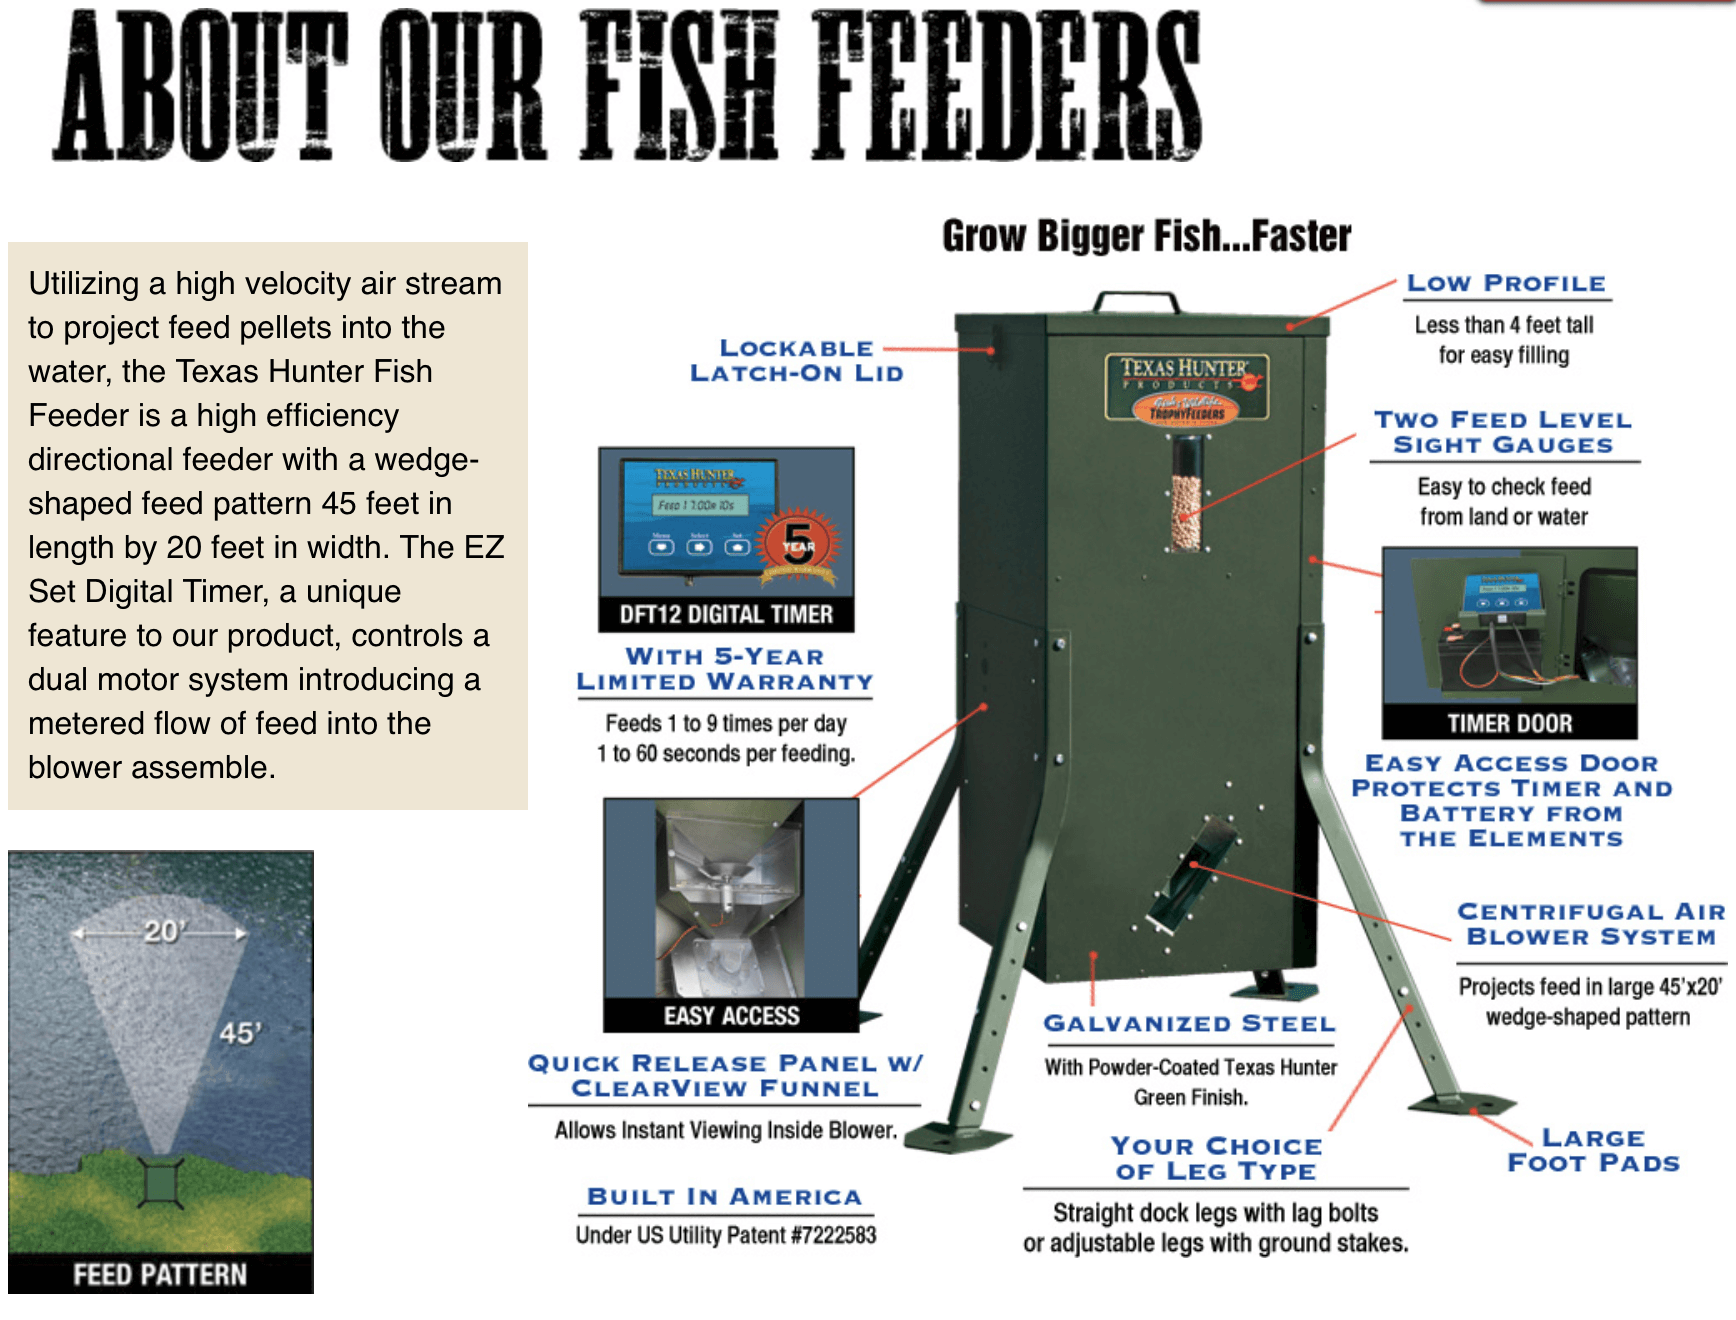 feeder scatter feeders product complete capacity fish directional lb sweeney package